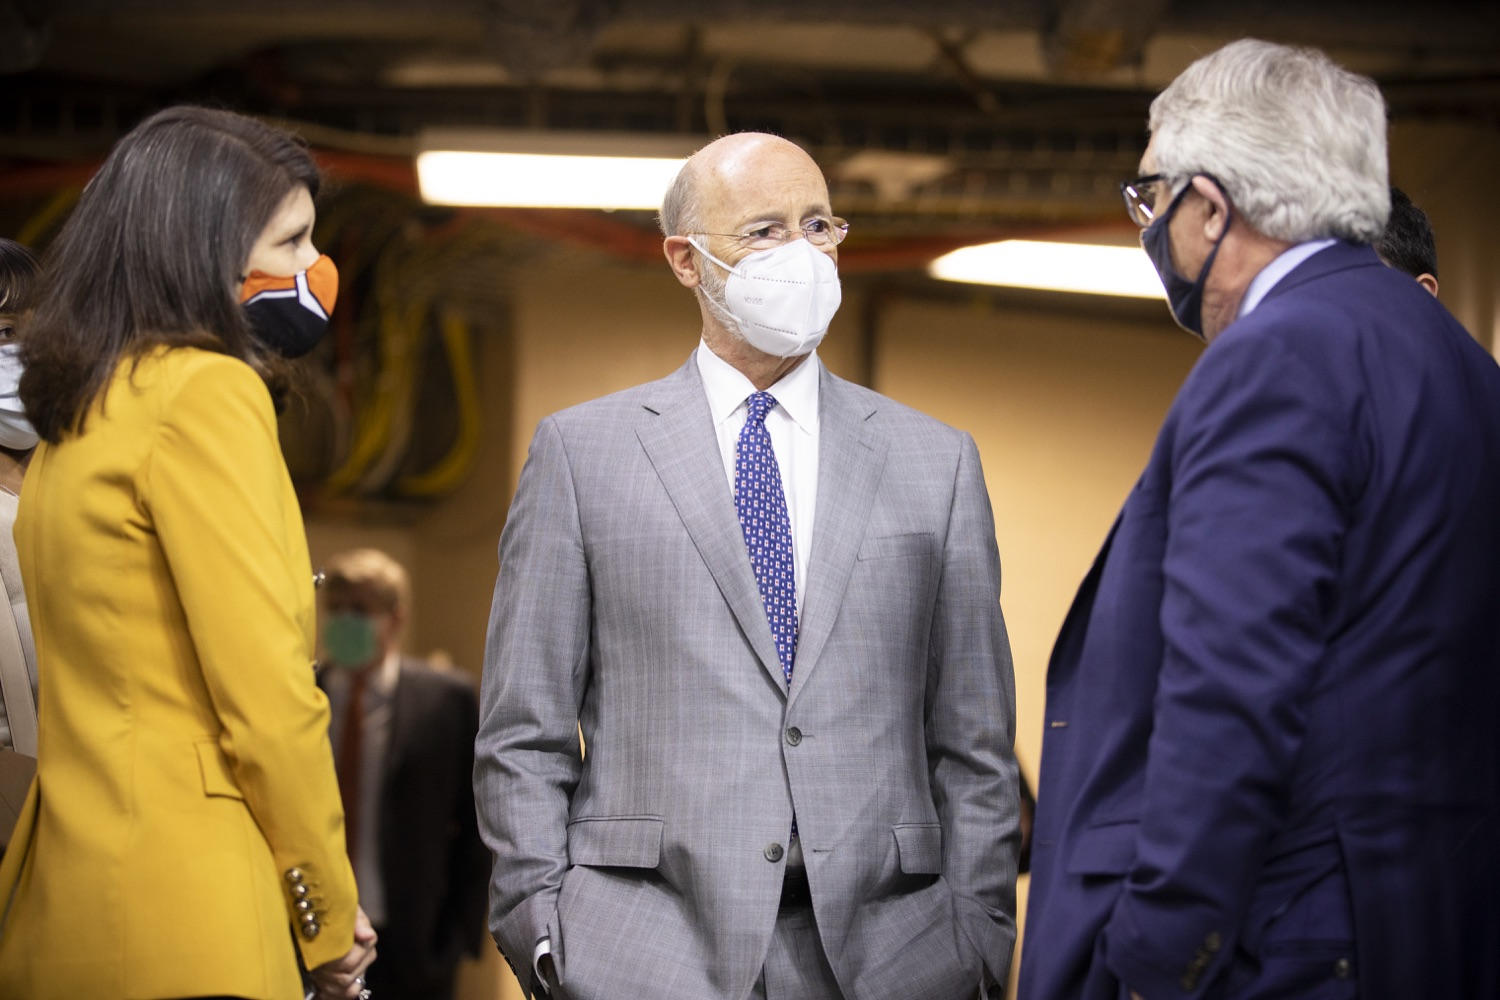 """<a href=""""https://filesource.wostreaming.net/commonwealthofpa/photo/18727_gov_vaccines_dz_011.jpg"""" target=""""_blank"""">⇣Download Photo<br></a>Pennsylvania Governor Tom Wolf meeting with Valerie Camillo, President of Business Operations, Philadelphia Flyers & Wells Fargo before the press conference.   Governor Tom Wolf today visited the Philadelphia Flyers organization at the Wells Fargo Center in Philadelphia to discuss COVID-19 vaccine efforts in Pennsylvania. The Flyers recently launched a comprehensive COVID-19 vaccine campaign, Take Your Shot, encouraging Pennsylvanians to get vaccinated.  Philadelphia, PA  MAY 3, 2021"""